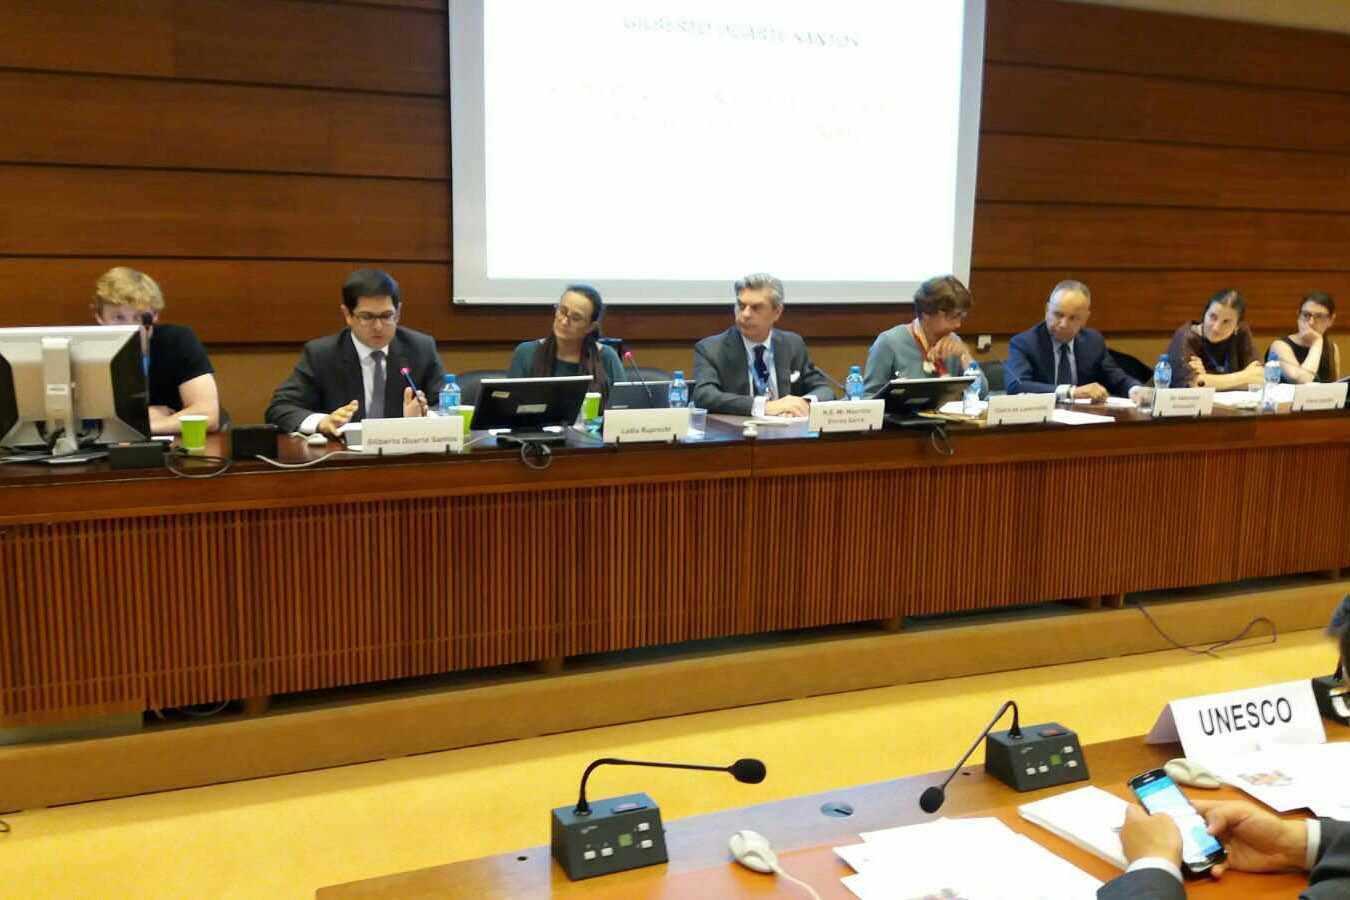 UN entities discuss human rights education in Geneva